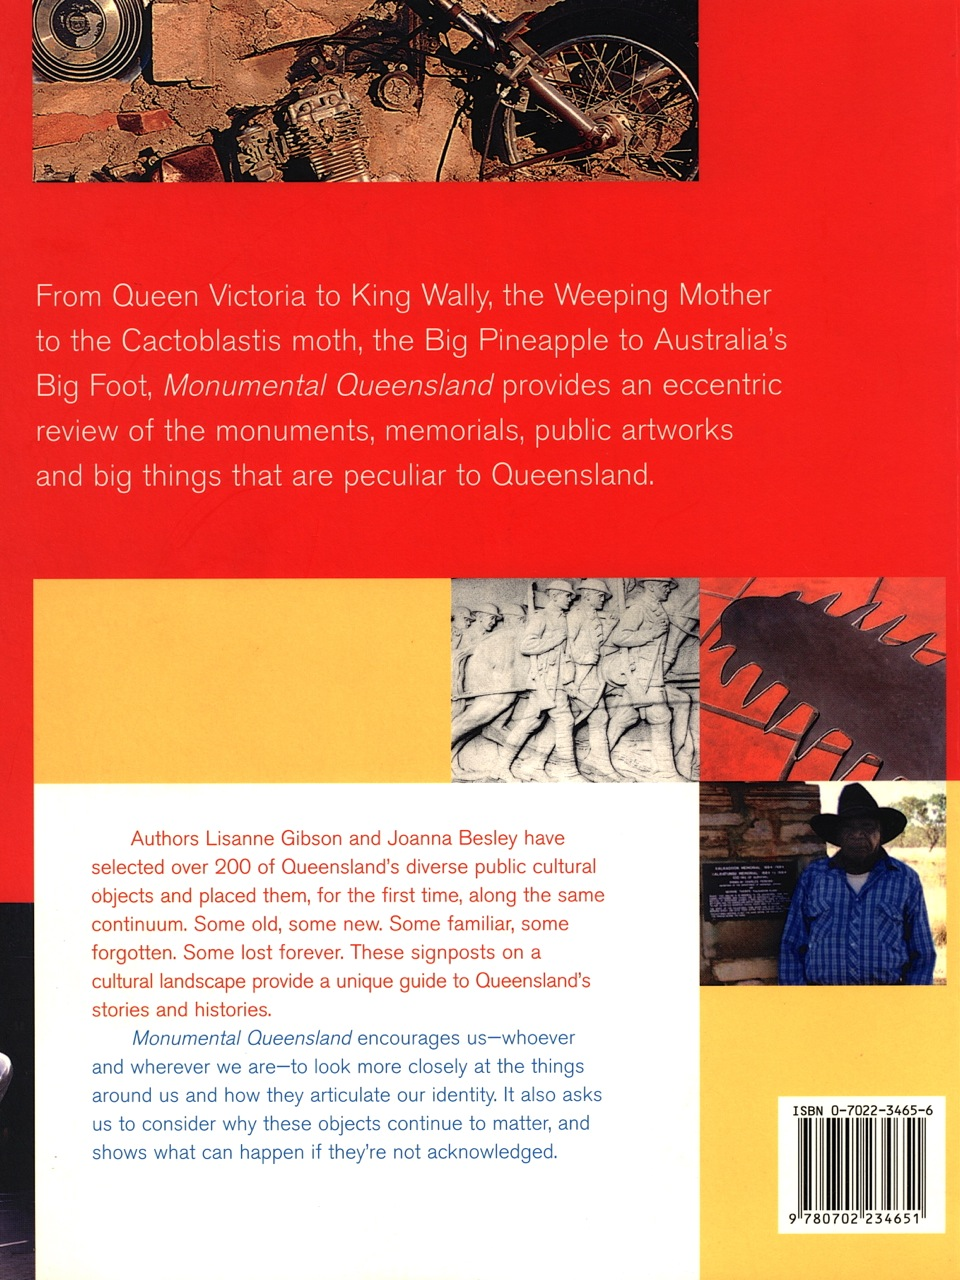 Monumental Qld back cover